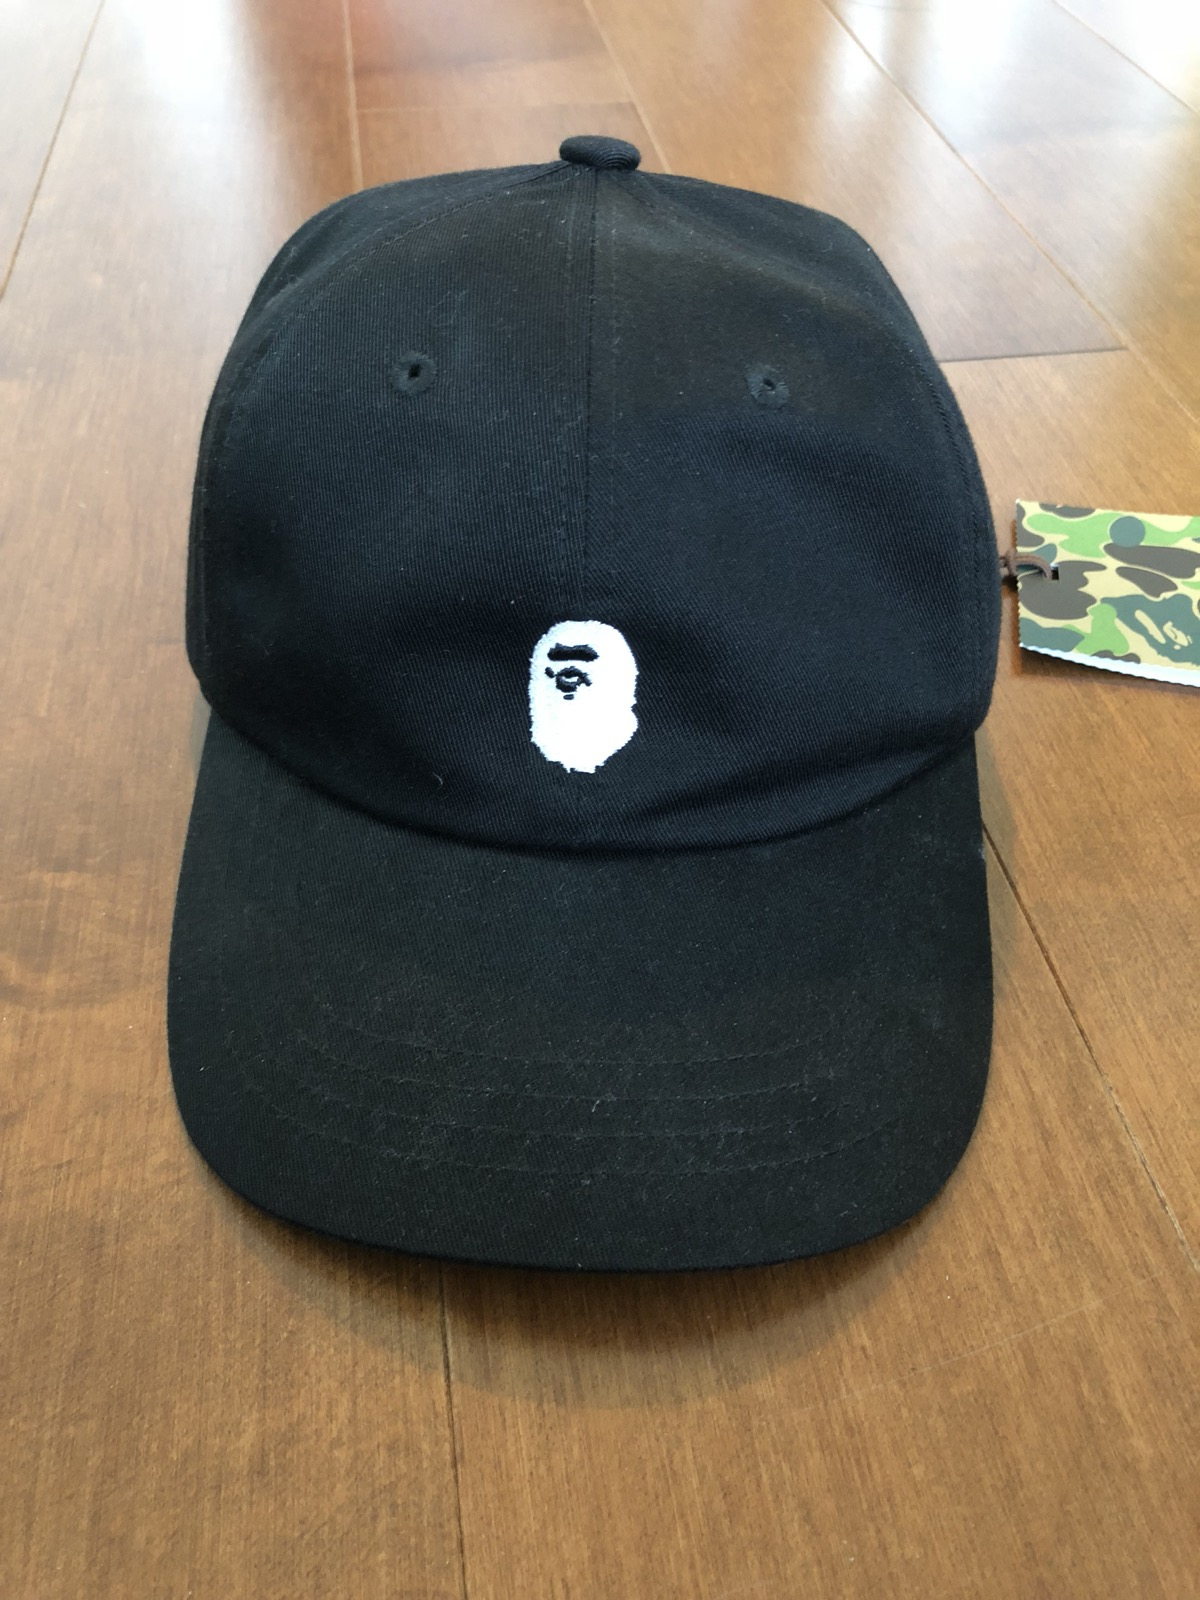 86bb81c85f8 Bape Ape Head Dad Hat Size one size - Hats for Sale - Grailed